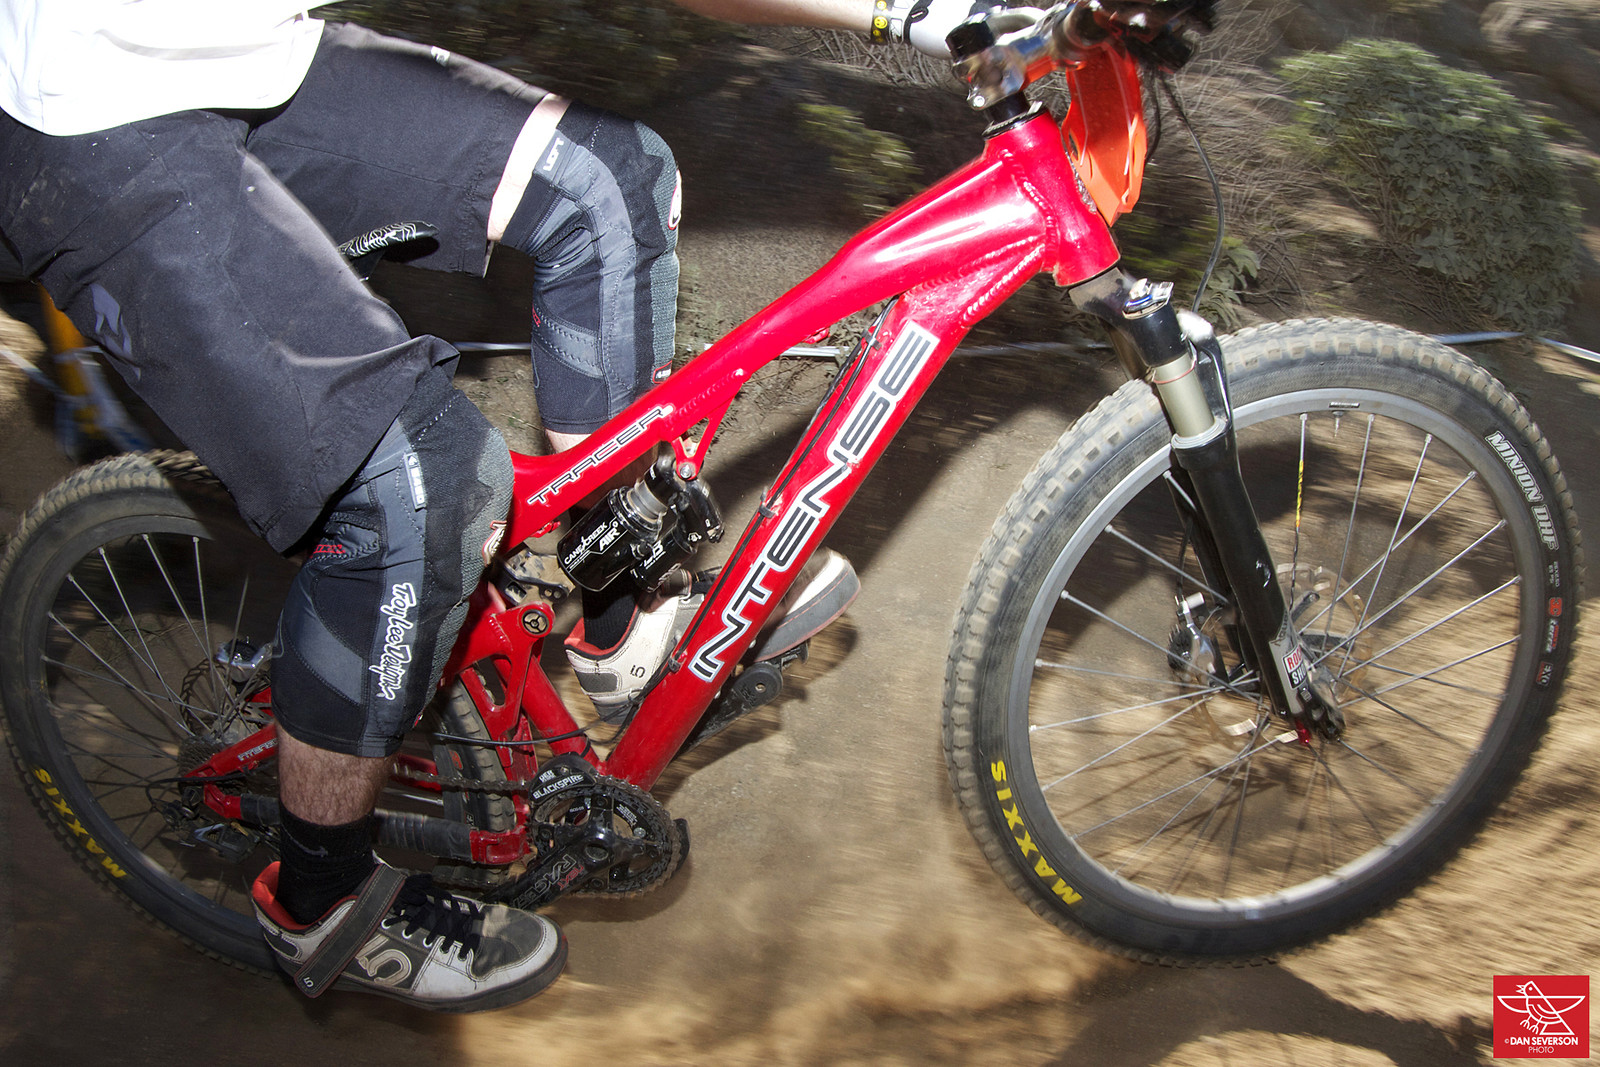 G-Out Project: Fontana 2015 - Intense Tracer - danseverson photo - Mountain Biking Pictures - Vital MTB